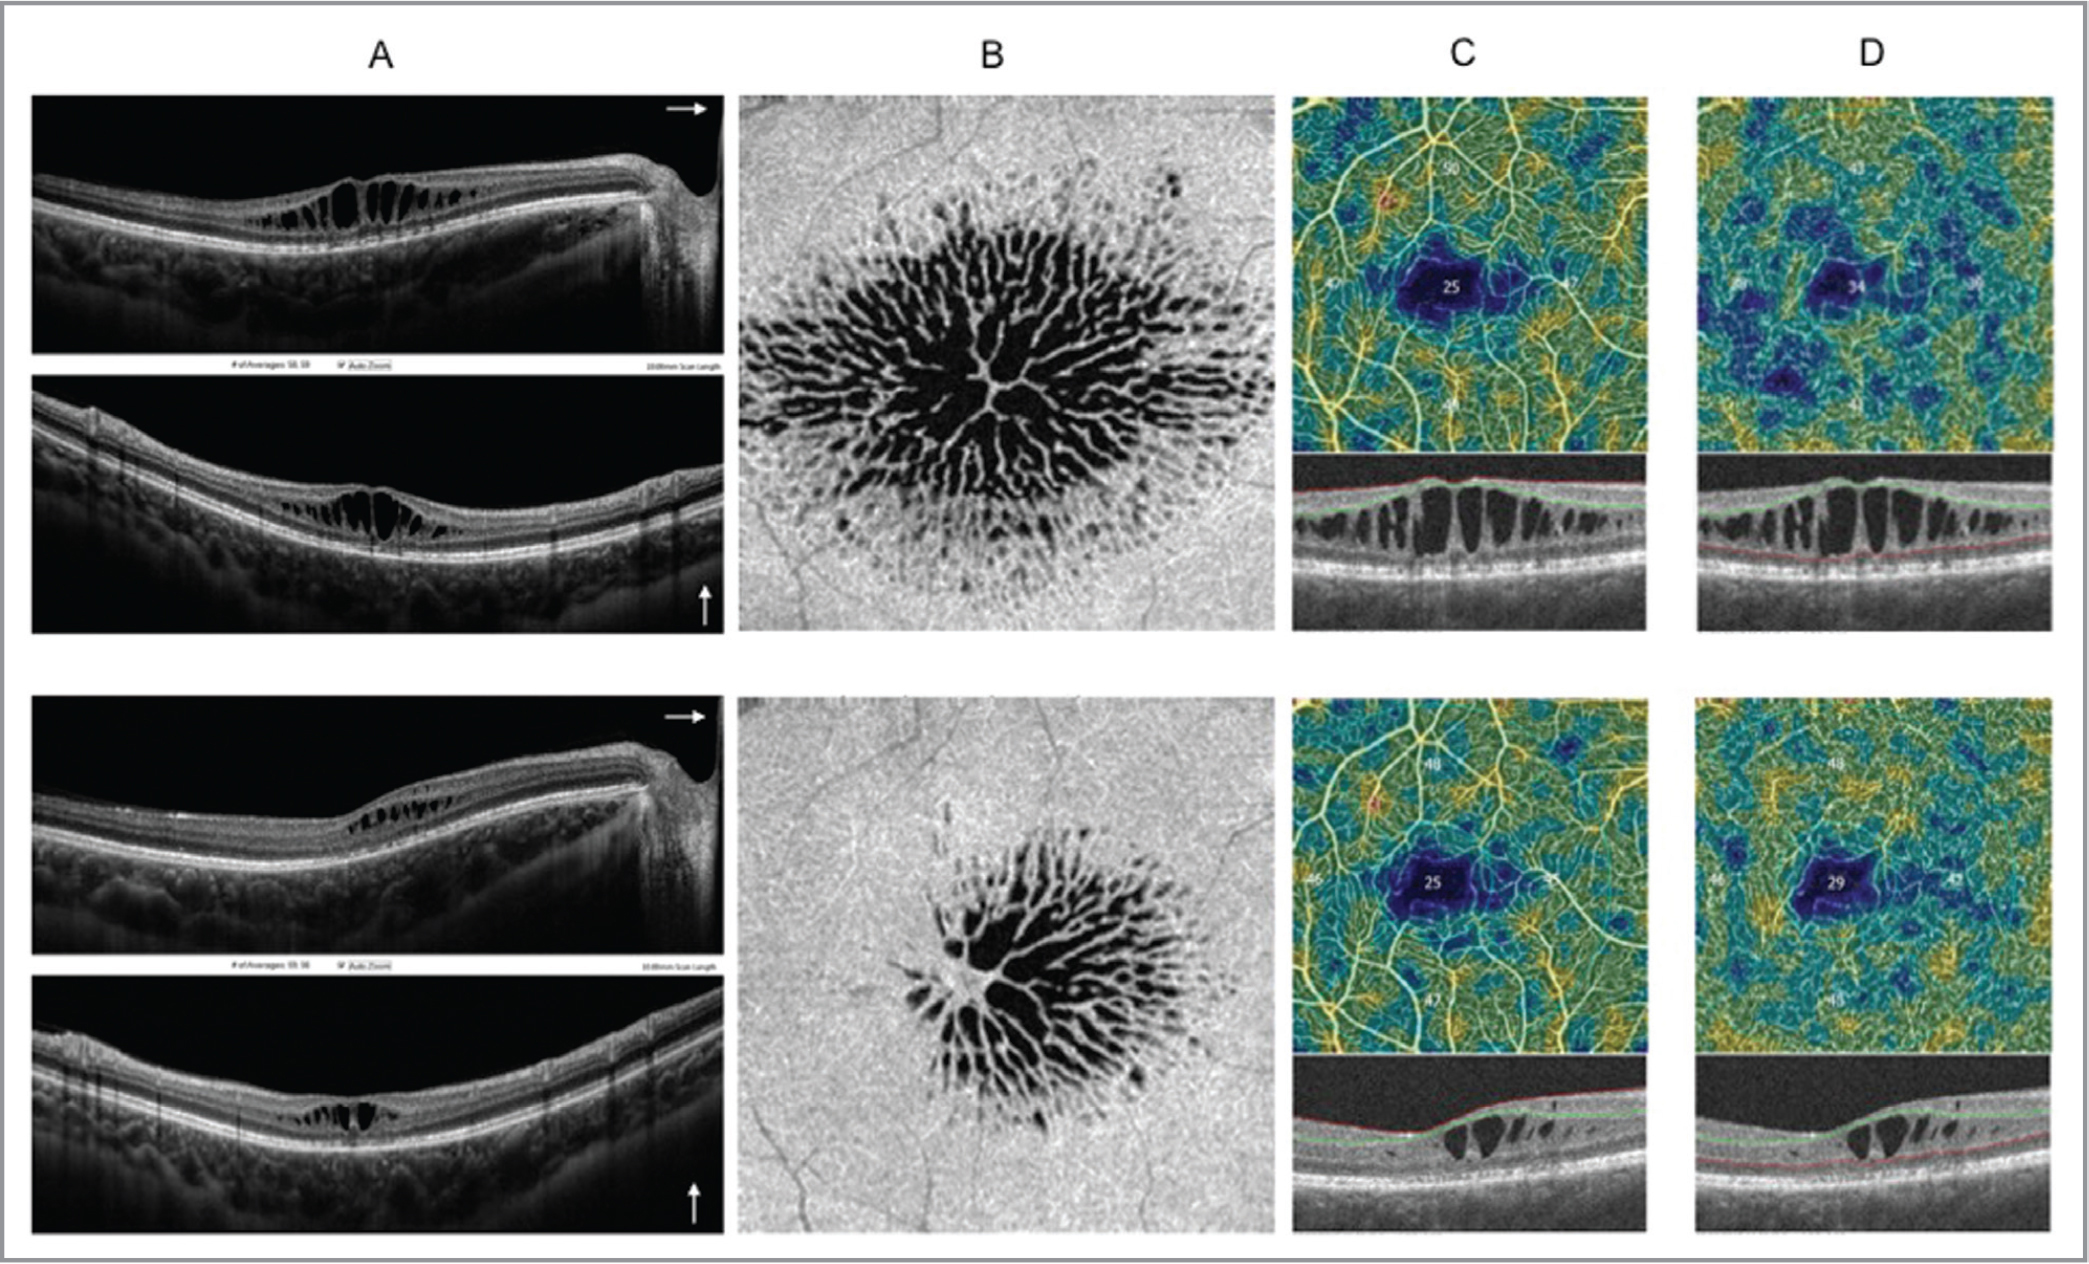 Images of the right eye of the proband (III:3) before and after treatment with oral 250 mg acetazolamide tablets twice daily and 2% dorzolamide collyrium. Spectral-domain optical coherence tomography (OCT) images from the vertical and horizontal scans centered on the fovea showing schisis in the ganglion cell layer in the parafoveal region and in the inner nuclear layer from the foveal to the extrafoveal region (A, top panel). En face OCT showing schitic cysts in a radial pattern in the foveal and parafoveal areas before treatment (B, top panel). Corresponding OCT angiography (OCTA) perfusion maps showing vessel density reduction in the foveal and parafoveal areas in the superficial and deep capillary plexuses (C and D, top panel, respectively). After treatment, there is a reduction of central retinal thickness (A, bottom panel) on spectral-domain OCT and partial resolution of schitic cysts particularly in the temporal area (B, bottom panel) on en face OCT. Vessel density partially increases after treatment on OCTA (C and D, top and bottom panels).